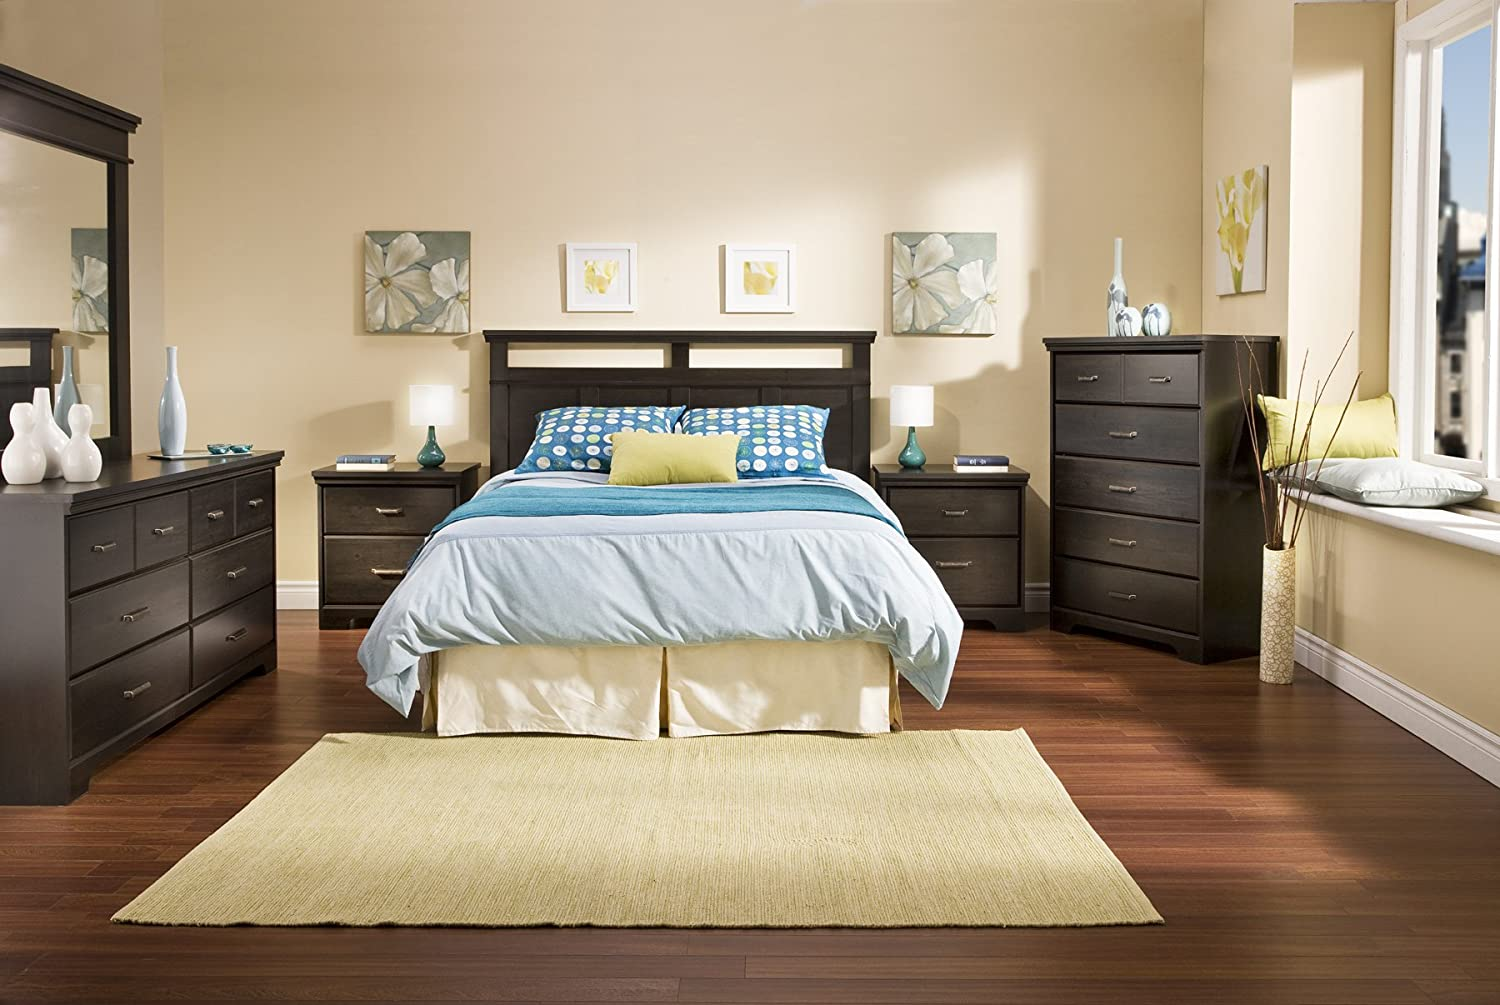 Amazon.com   South Shore Versa Collection Full/Queen Headboard, Ebony    Full Size Headboard